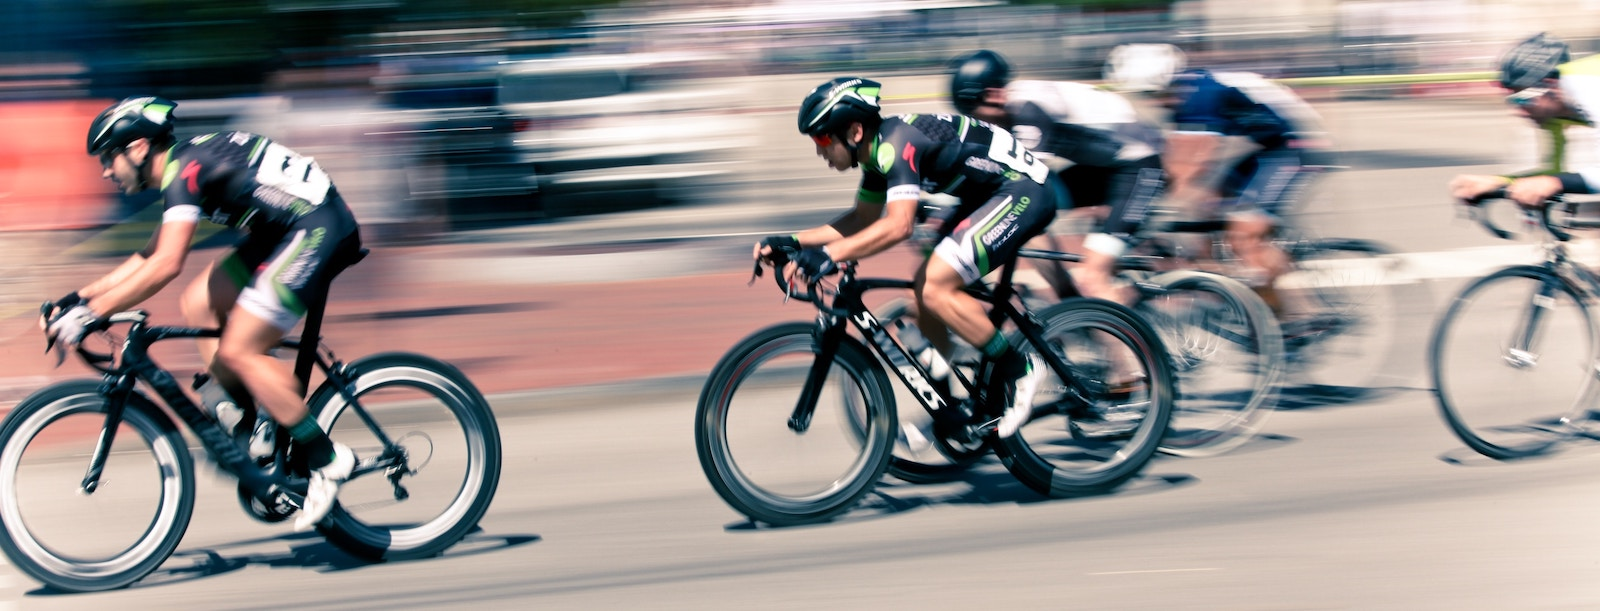 Athletic bikers participating in a road race.